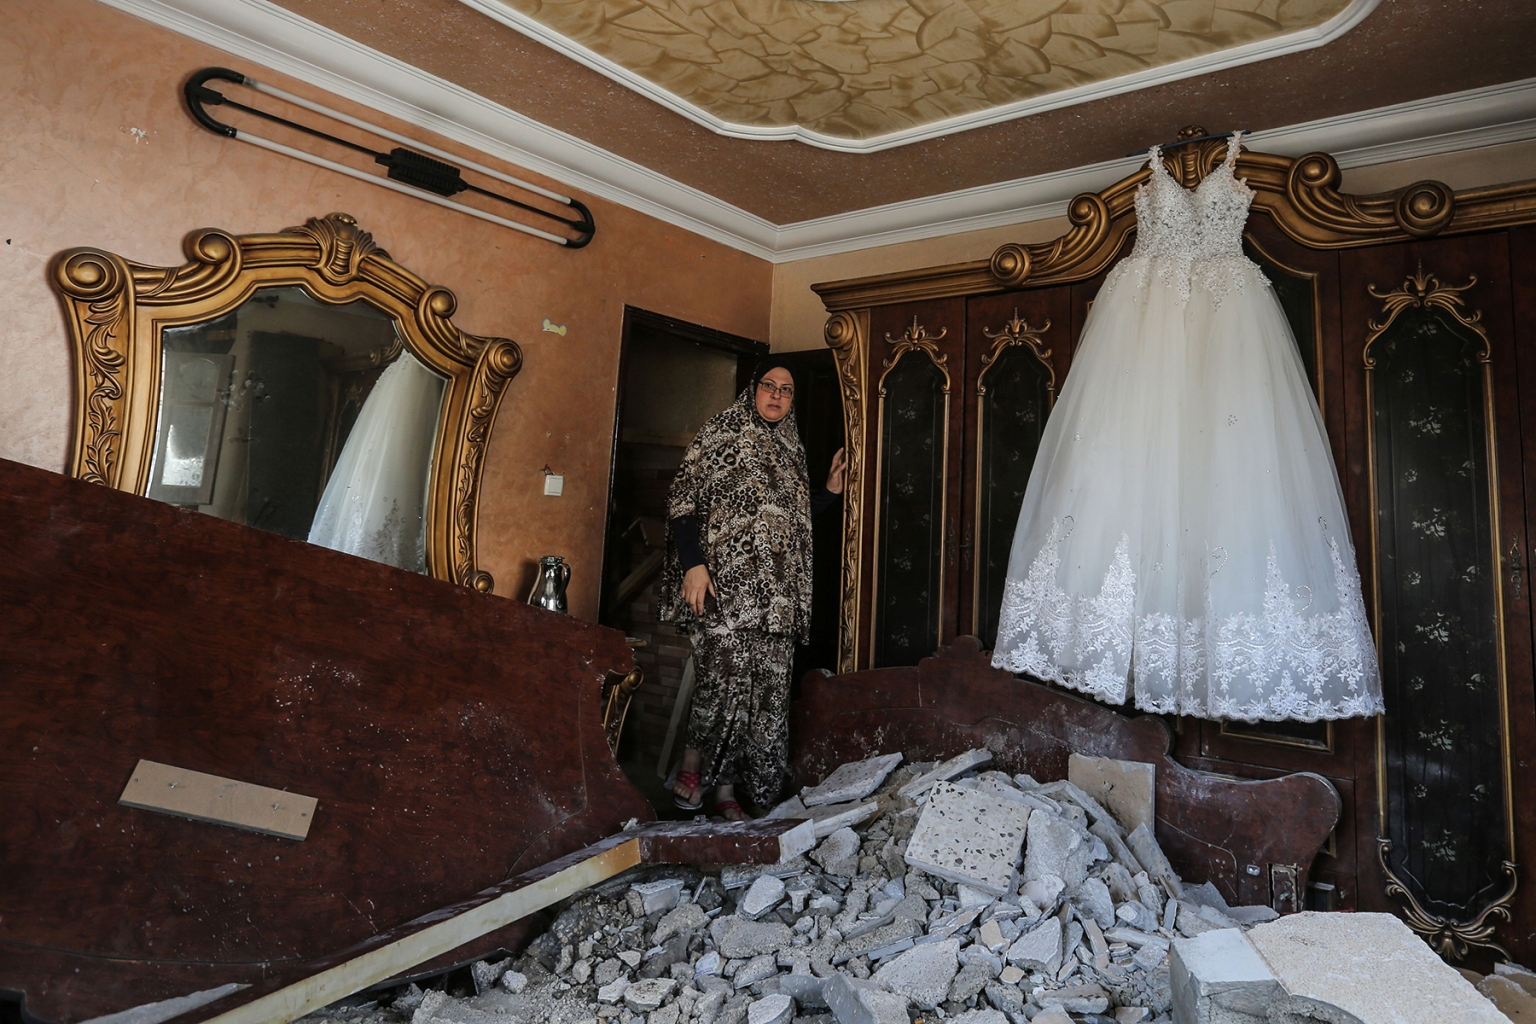 A Palestinian woman walks into a room damaged by an Israeli airstrike earlier this week in the Gaza Strip on Nov. 14. A ceasefire held began after the worst escalation between Israel and Gaza militants since a 2014 war, but the situation remained volatile and the deal provoked sharp disagreement within the Israeli government. MAHMUD HAMS/AFP/Getty Images